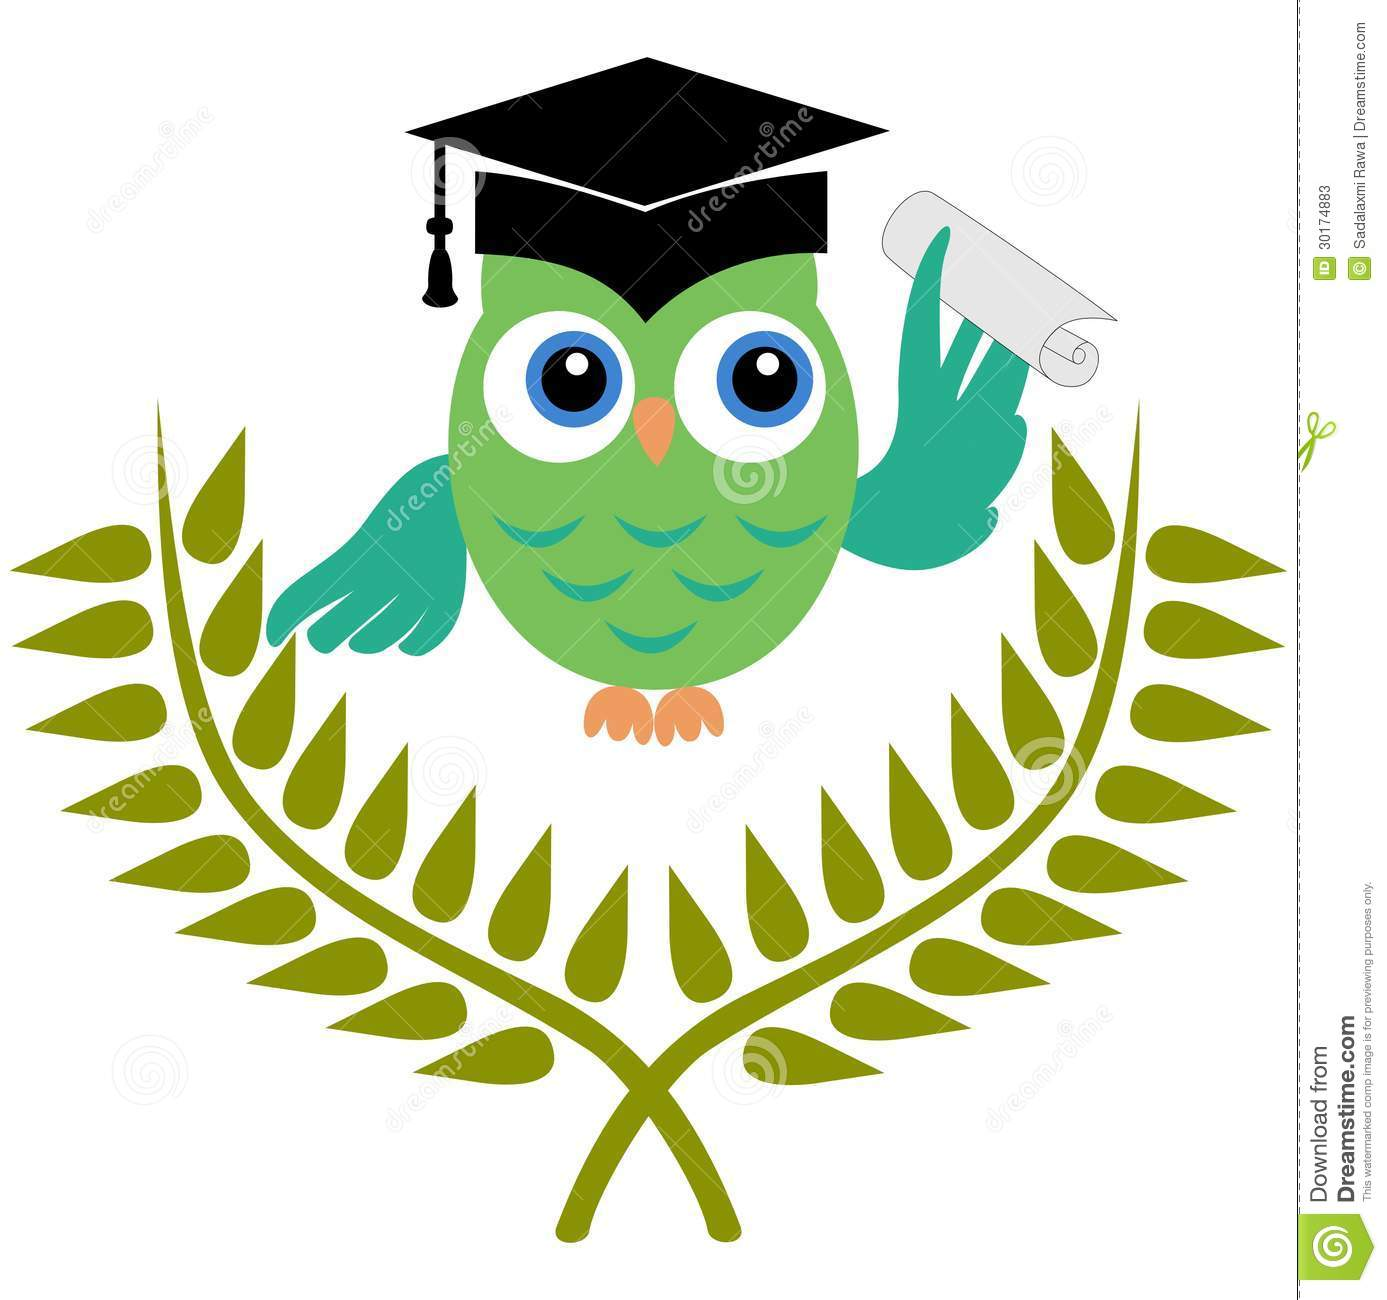 Owl With Graduation Degree Stock Photos - Image: 30174883